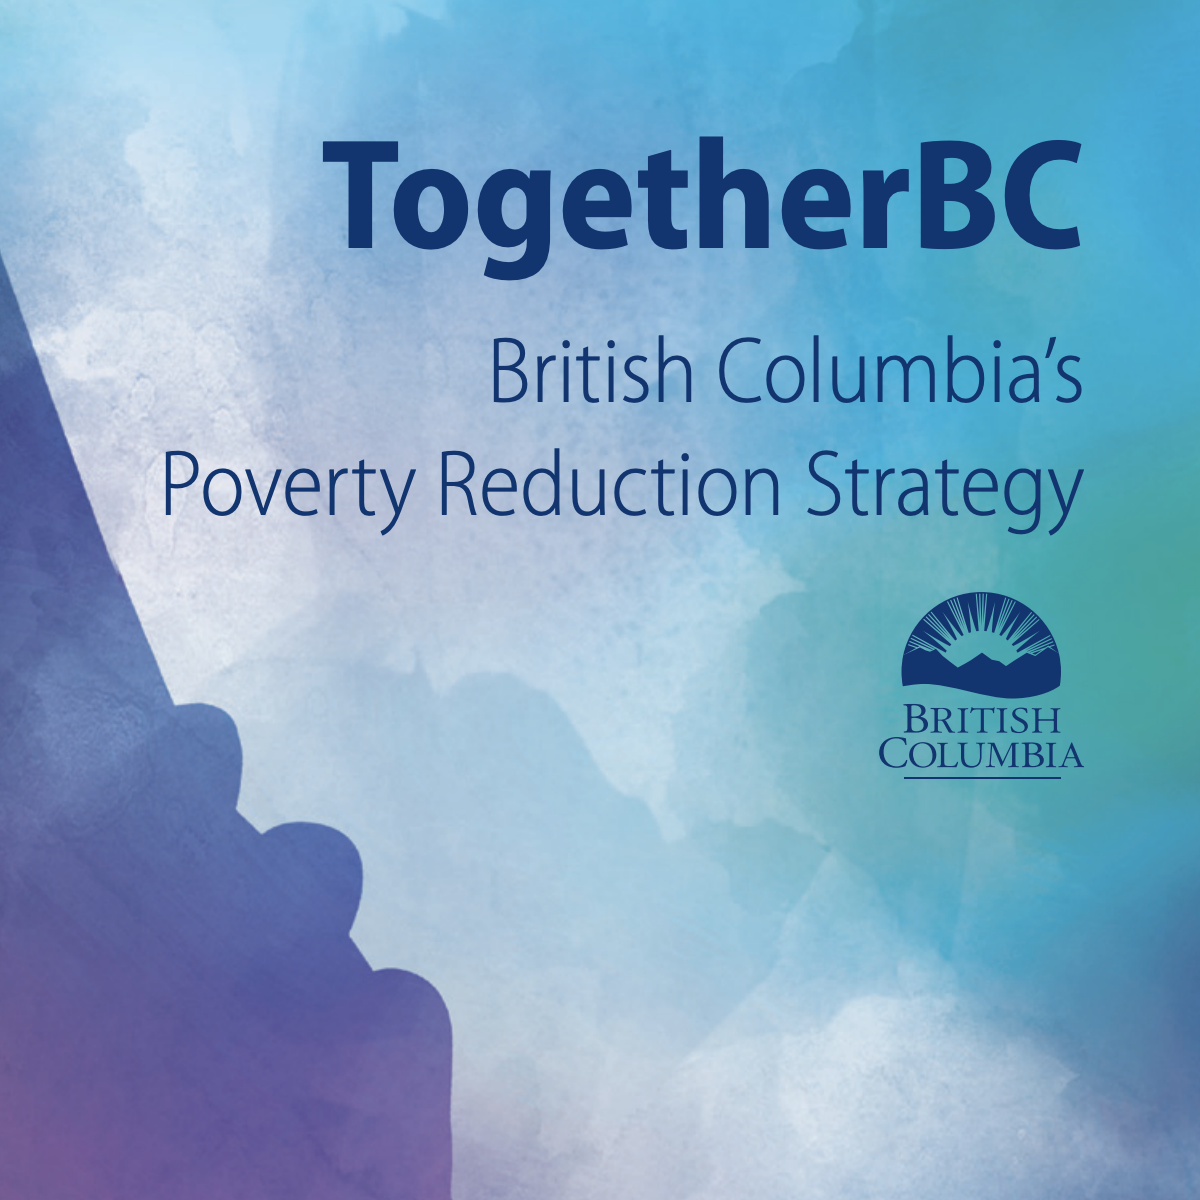 5 things to know about the TogetherBC Poverty Reduction Strategy Funding